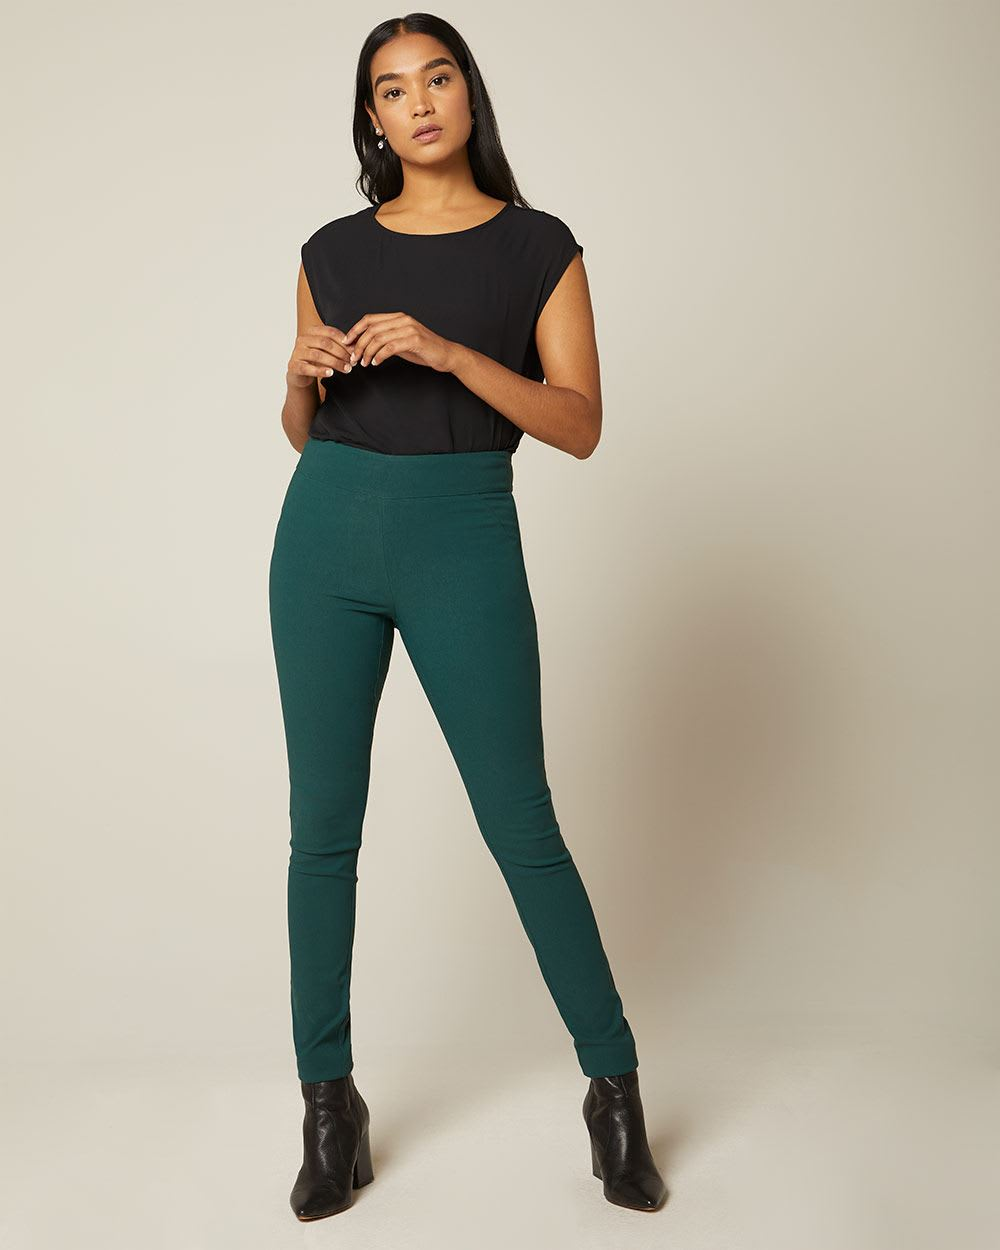 C&G Solid colour City legging pant - 31.5''